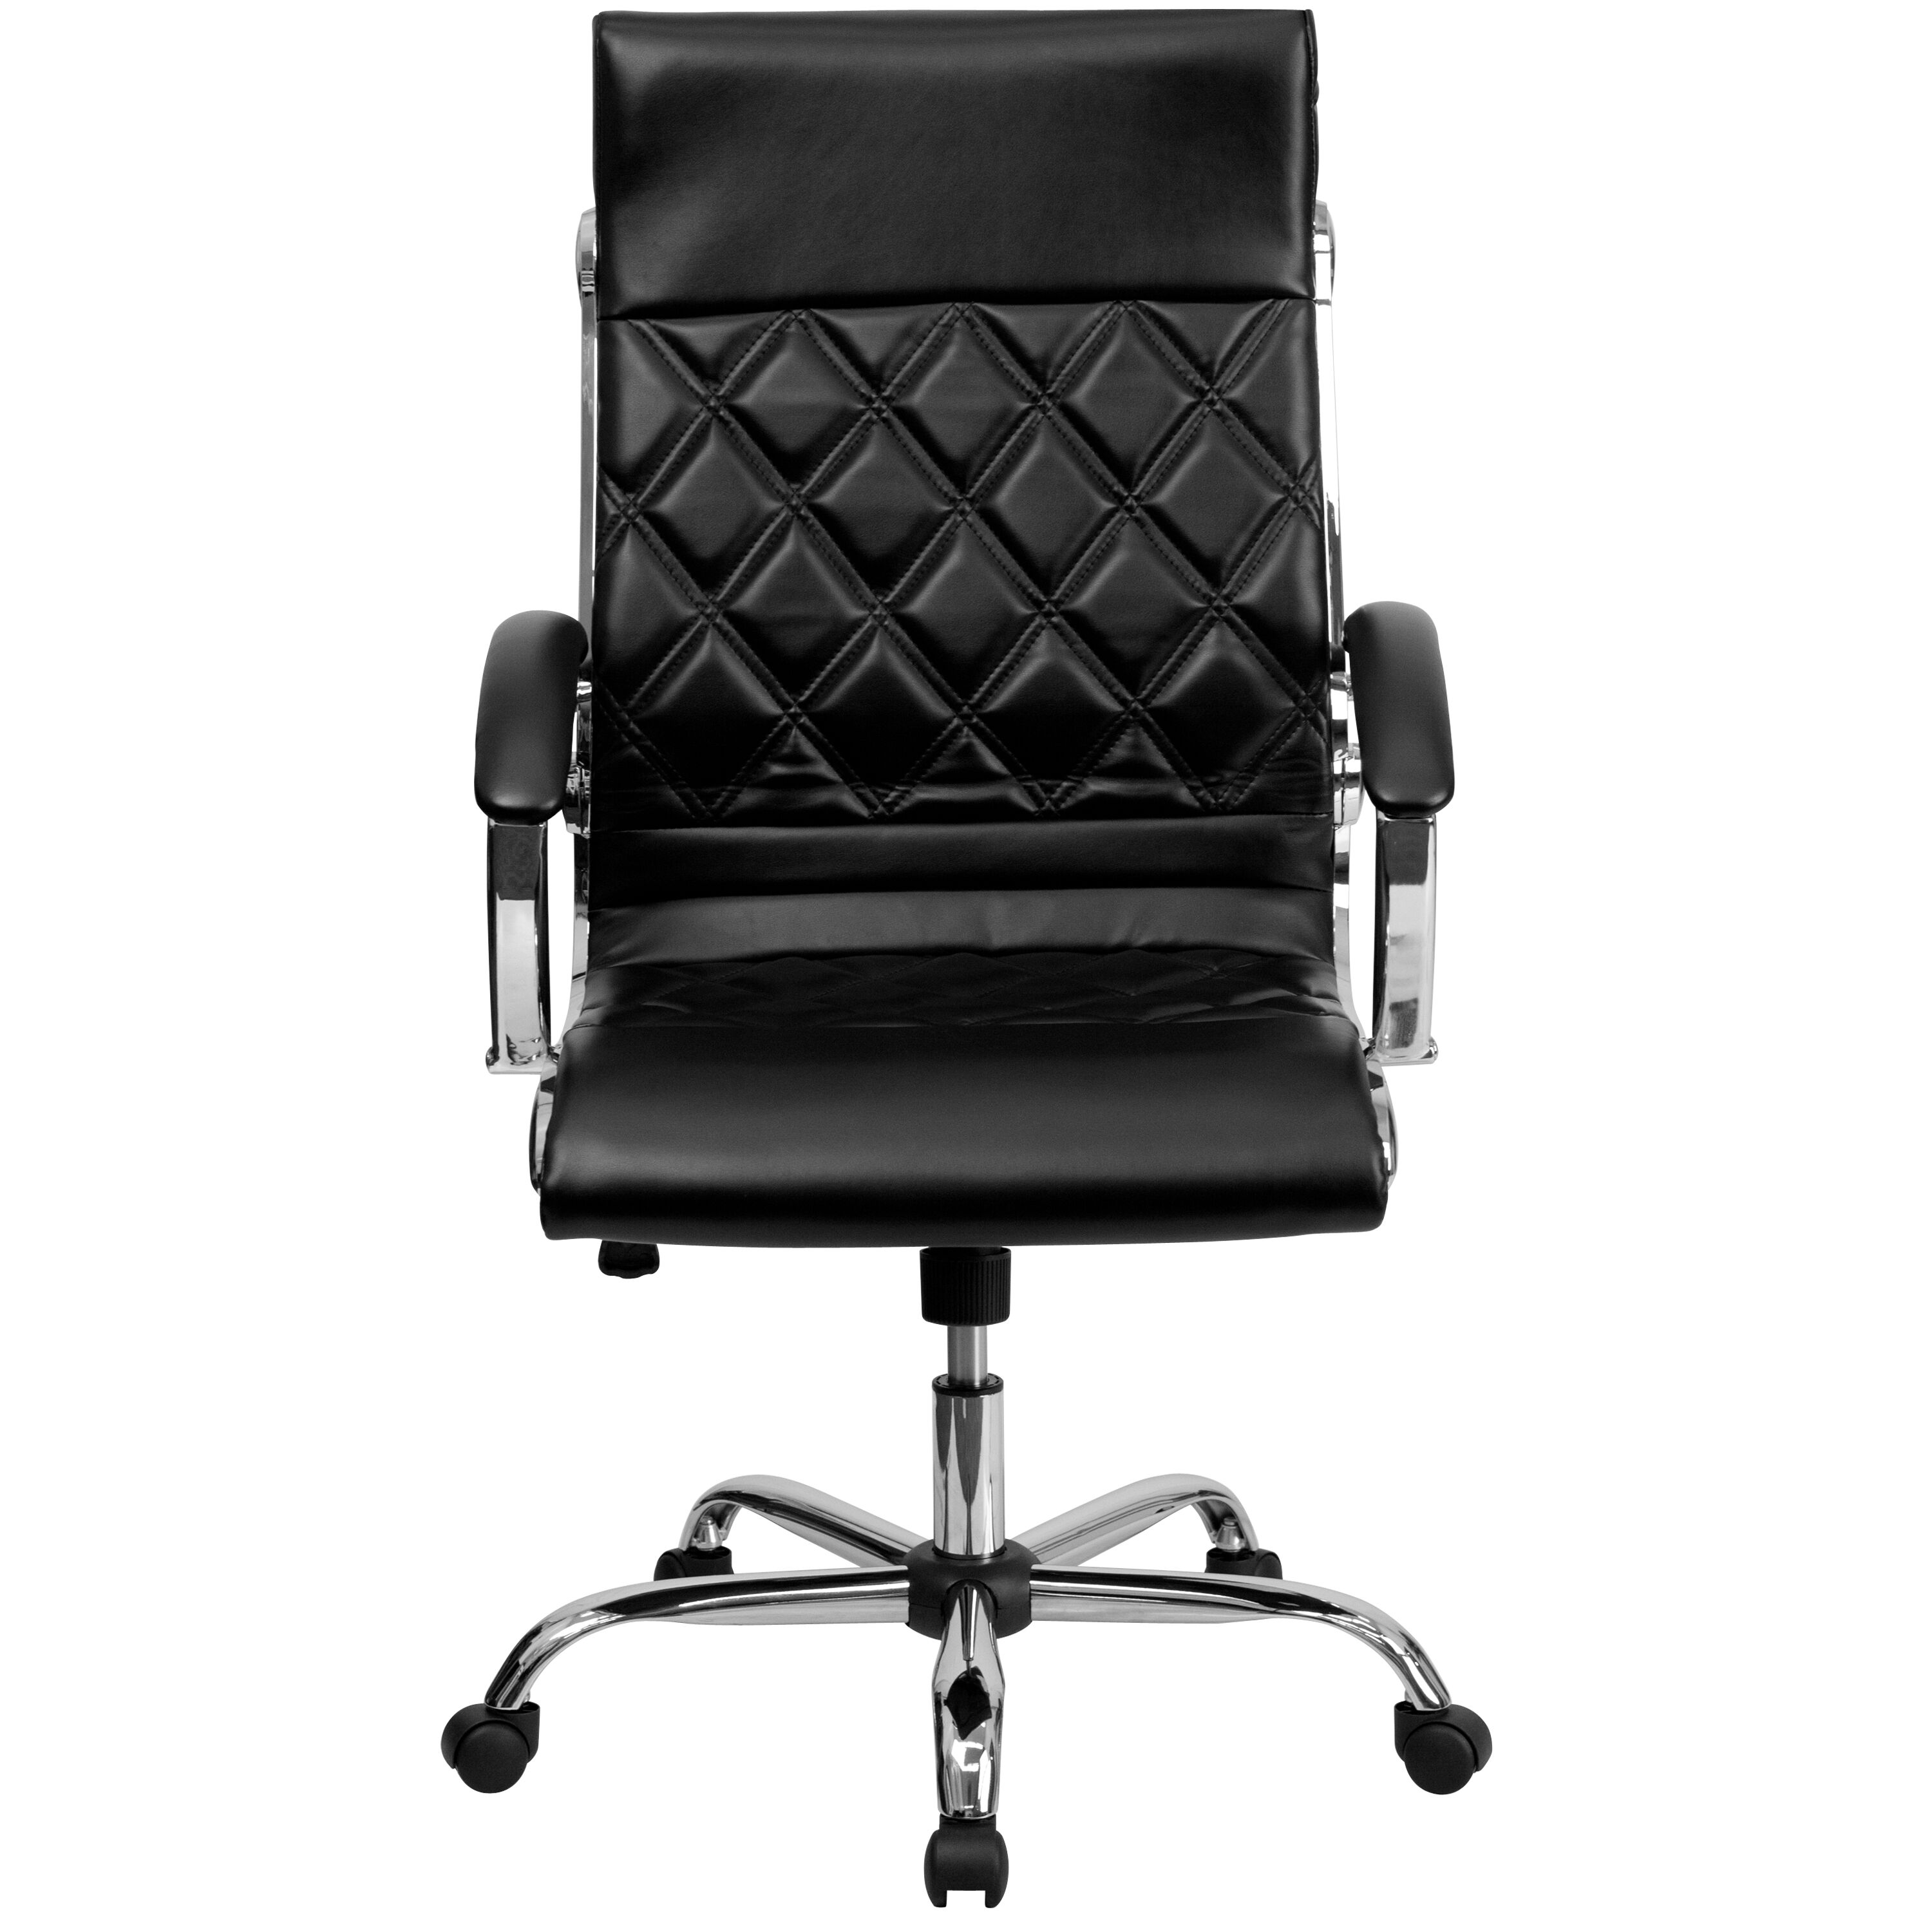 quilted swivel chair plastic outdoor chairs kmart high back designer black leather executive